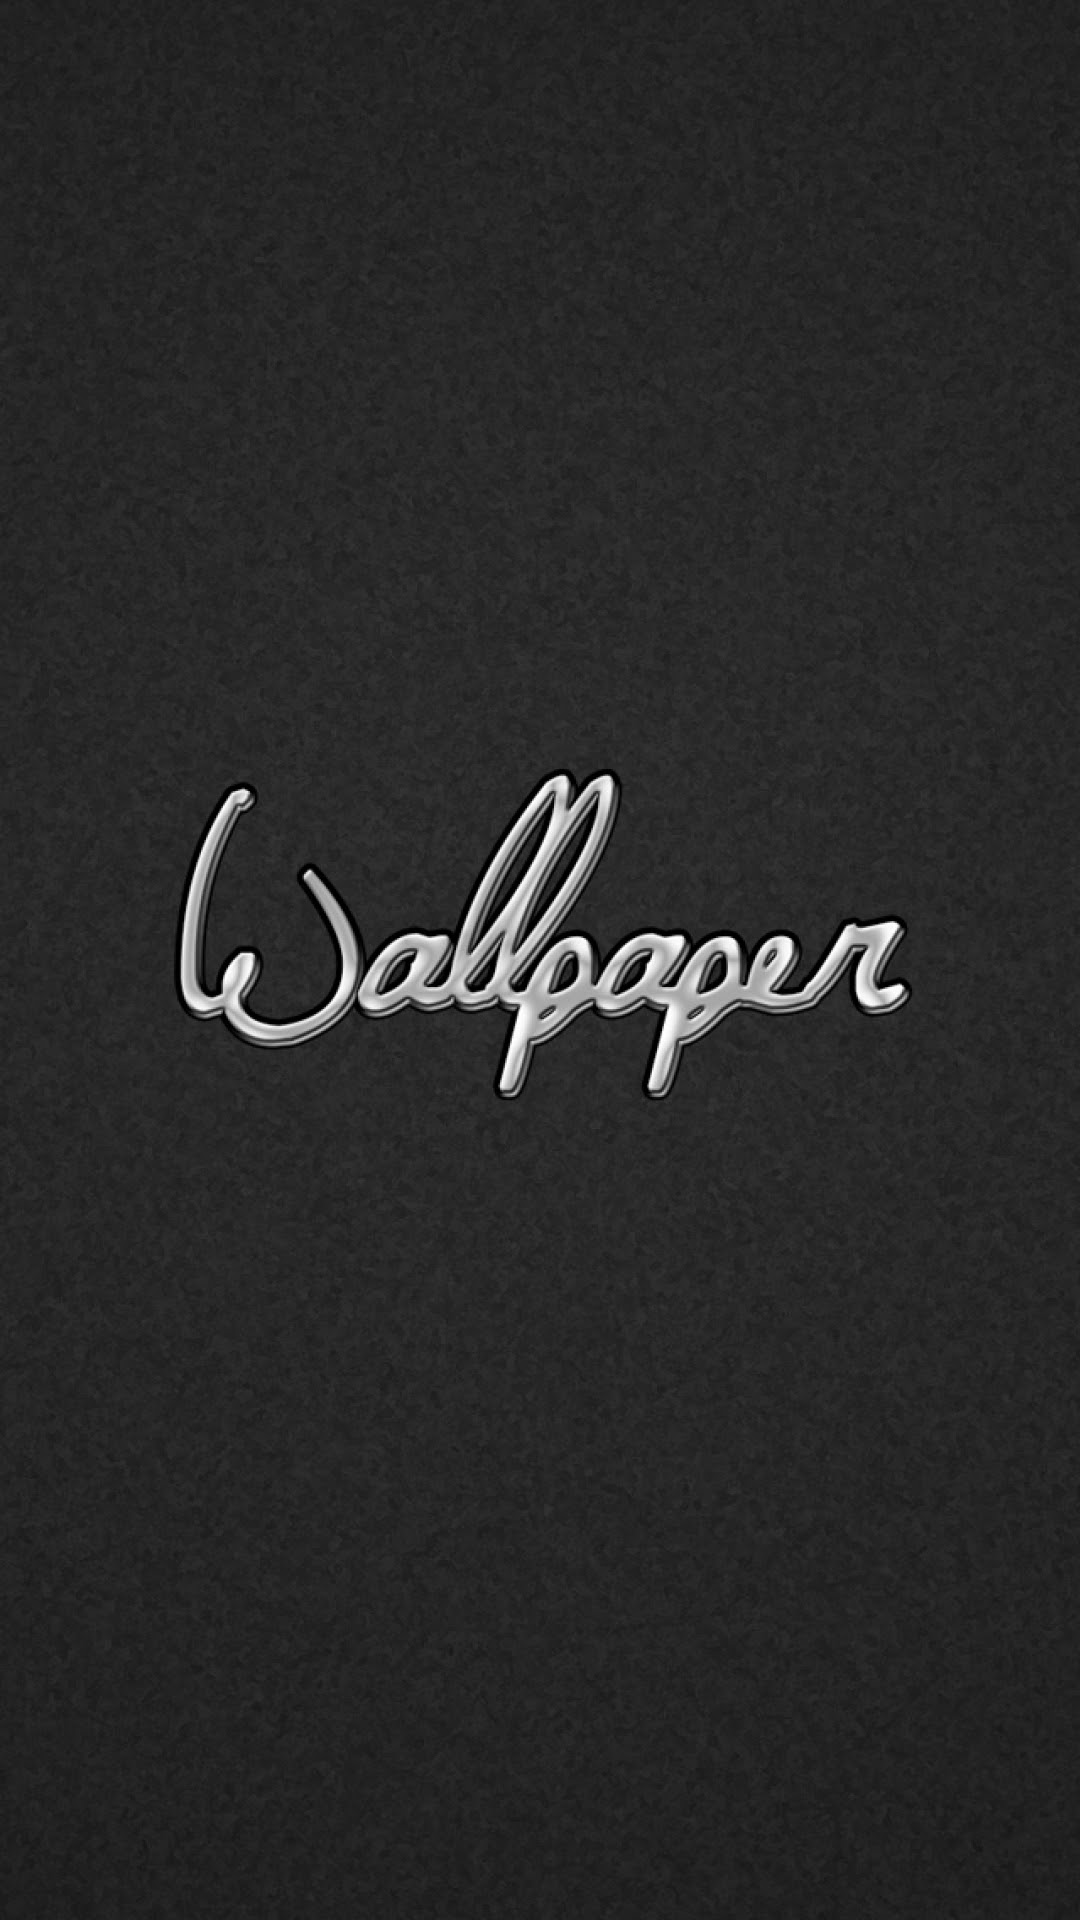 click here to download 768x1366 pixel wallpaper text placeholder android best wallpaper